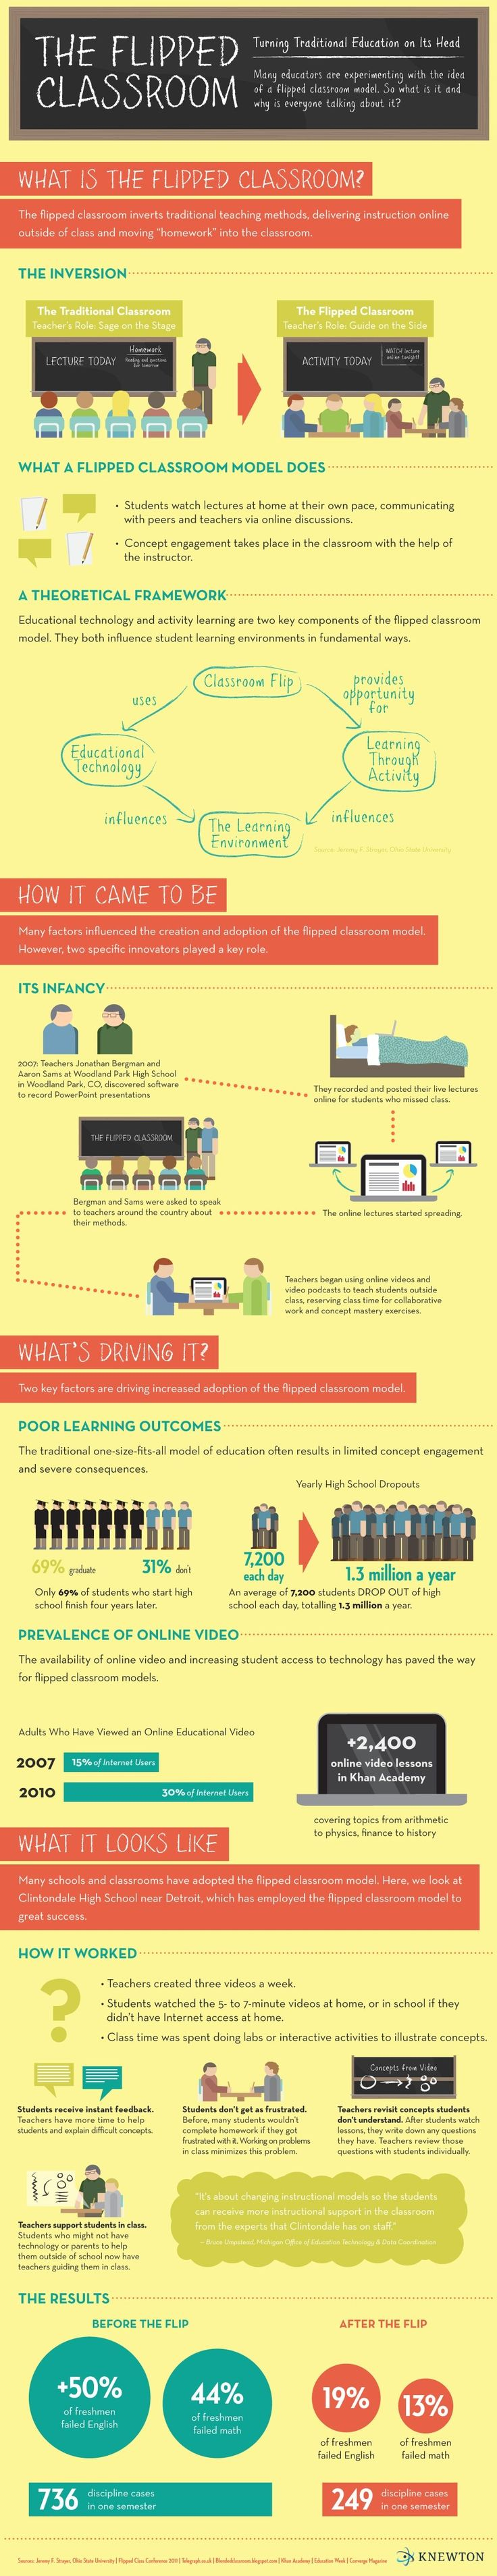 Here you can see an easy explanation of Flipped Classsroom. Moreover,